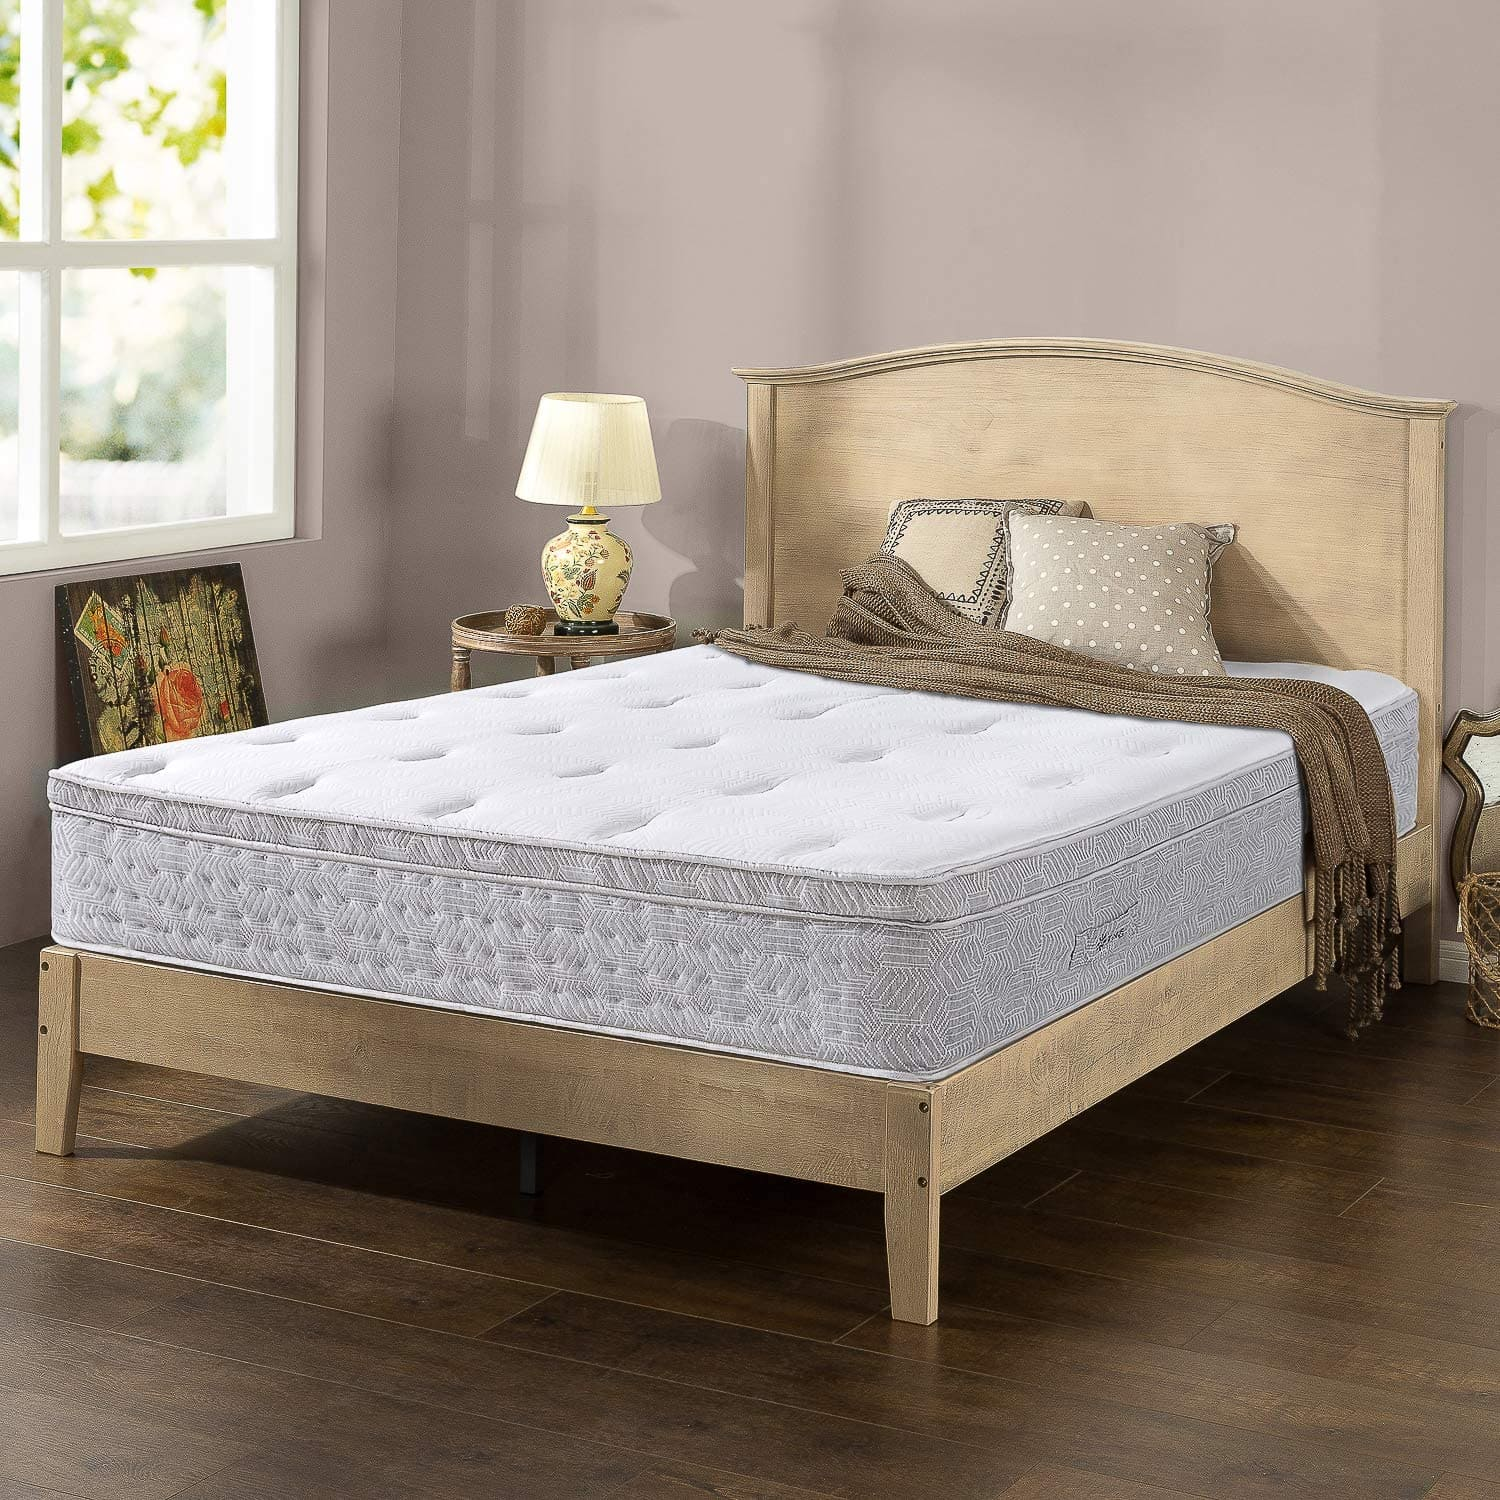 pressure relief euro top pocketed icoil® hybrid mattress